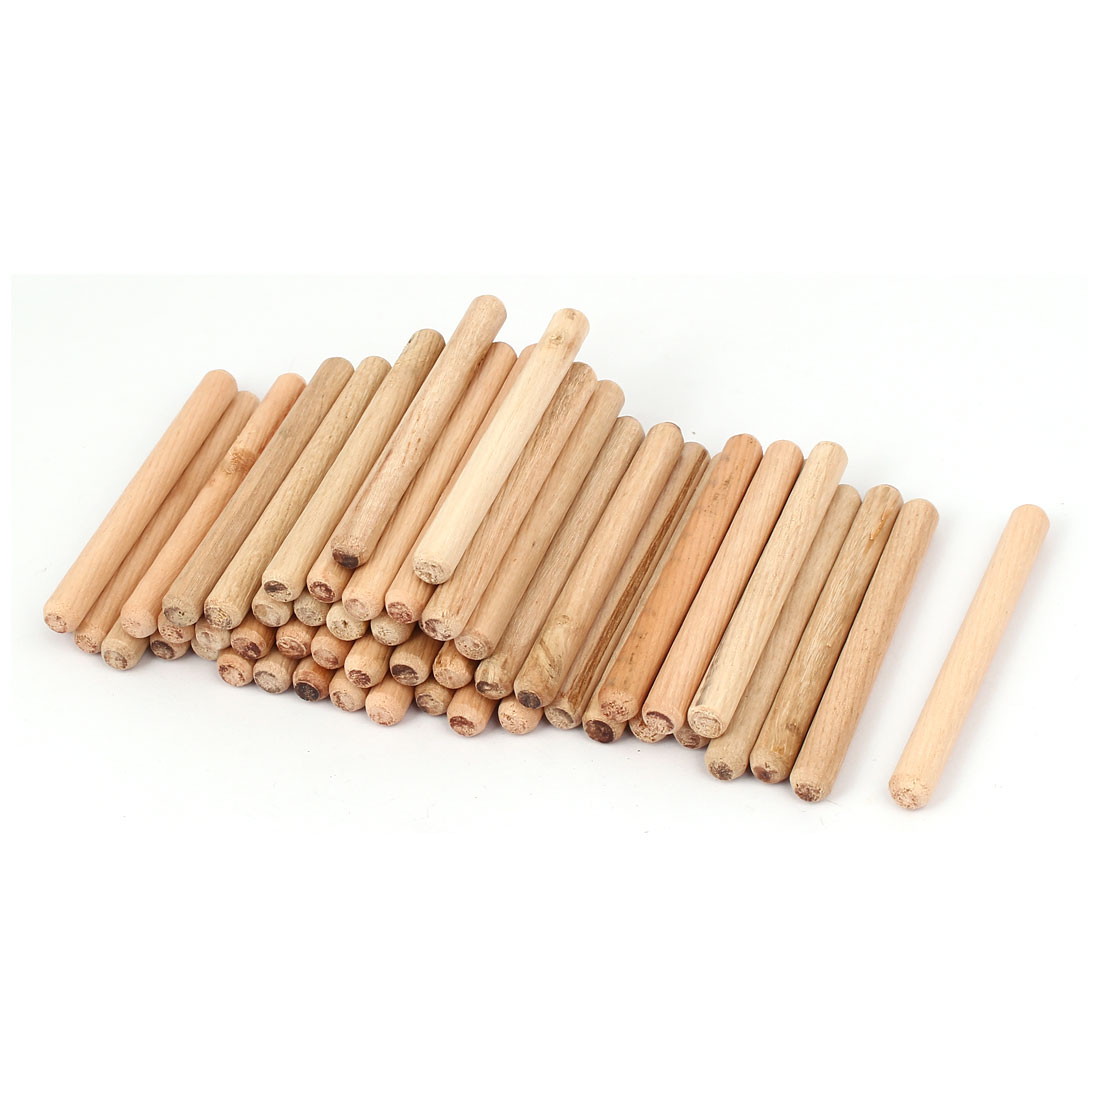 Fluted Wooden Dowels Pins Woodworking Craft Cabinet Make Dowels Materials CB